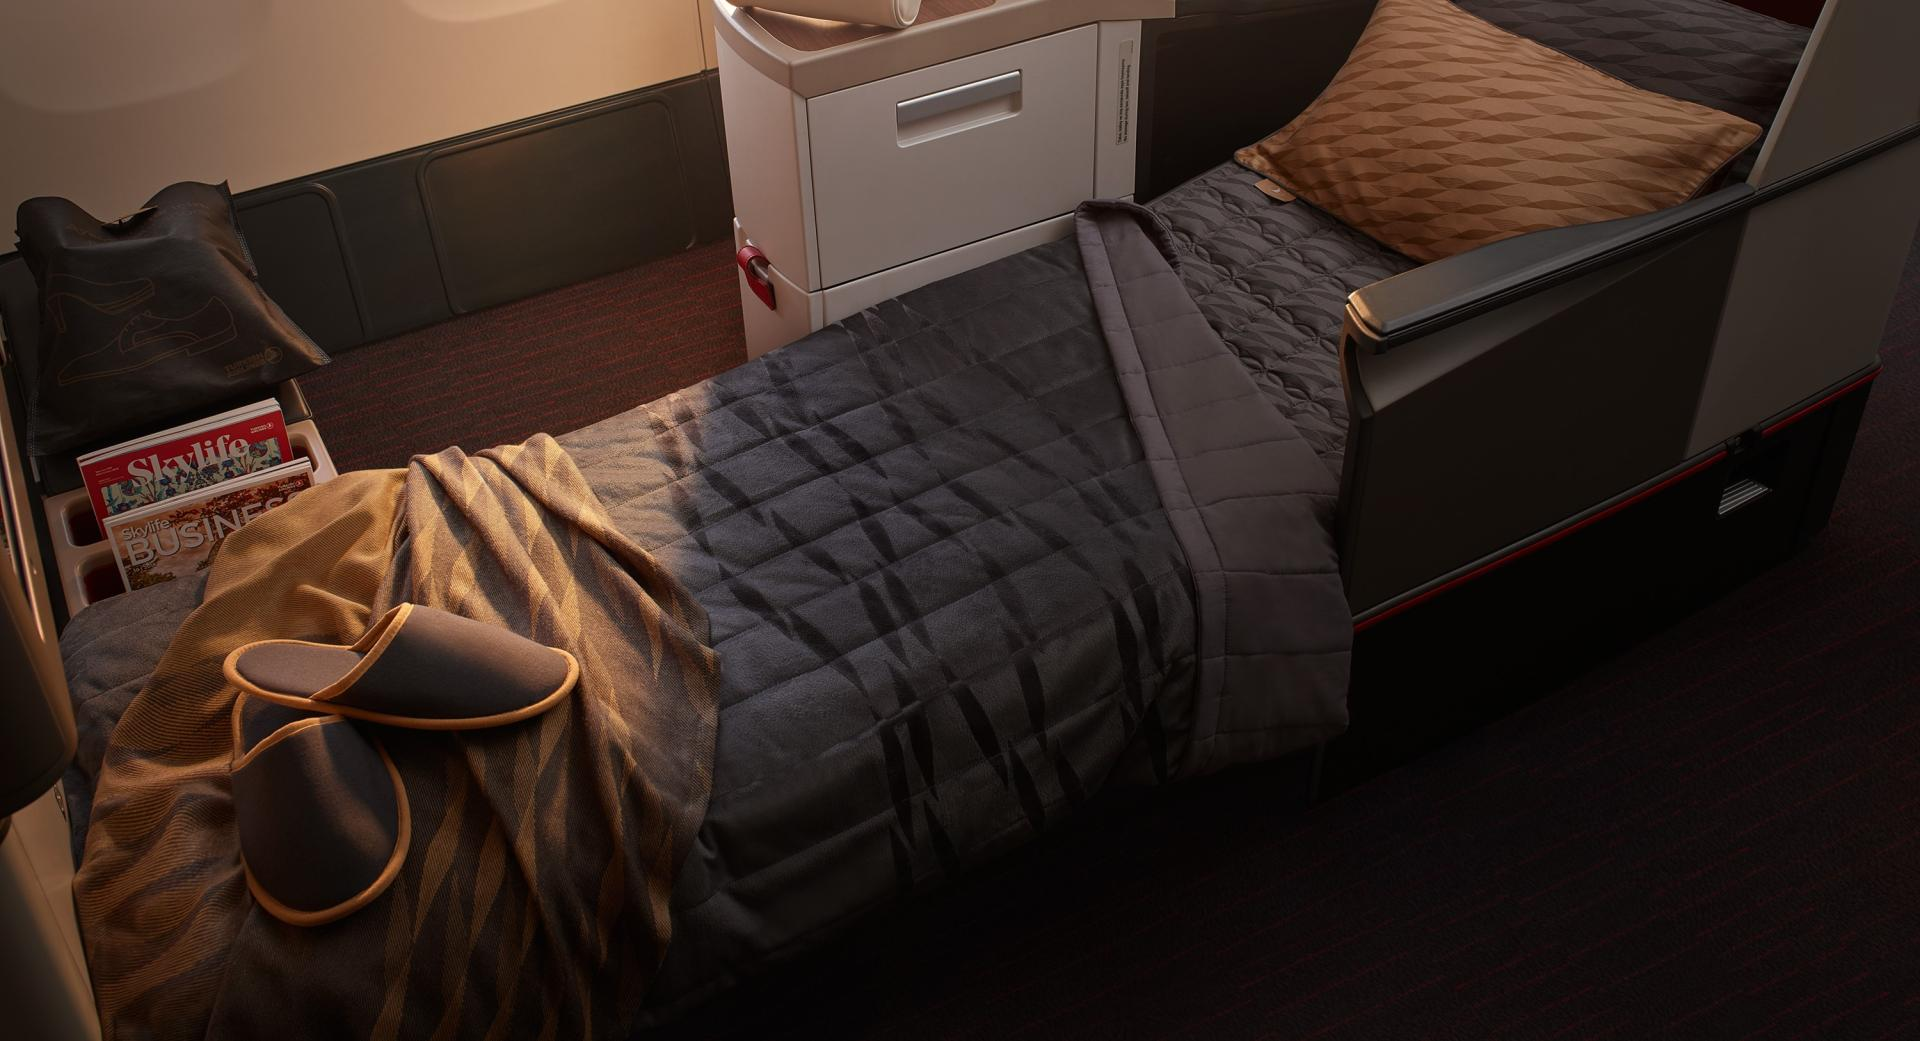 Turkish Airlines redesigns travel comfort (PHOTO)